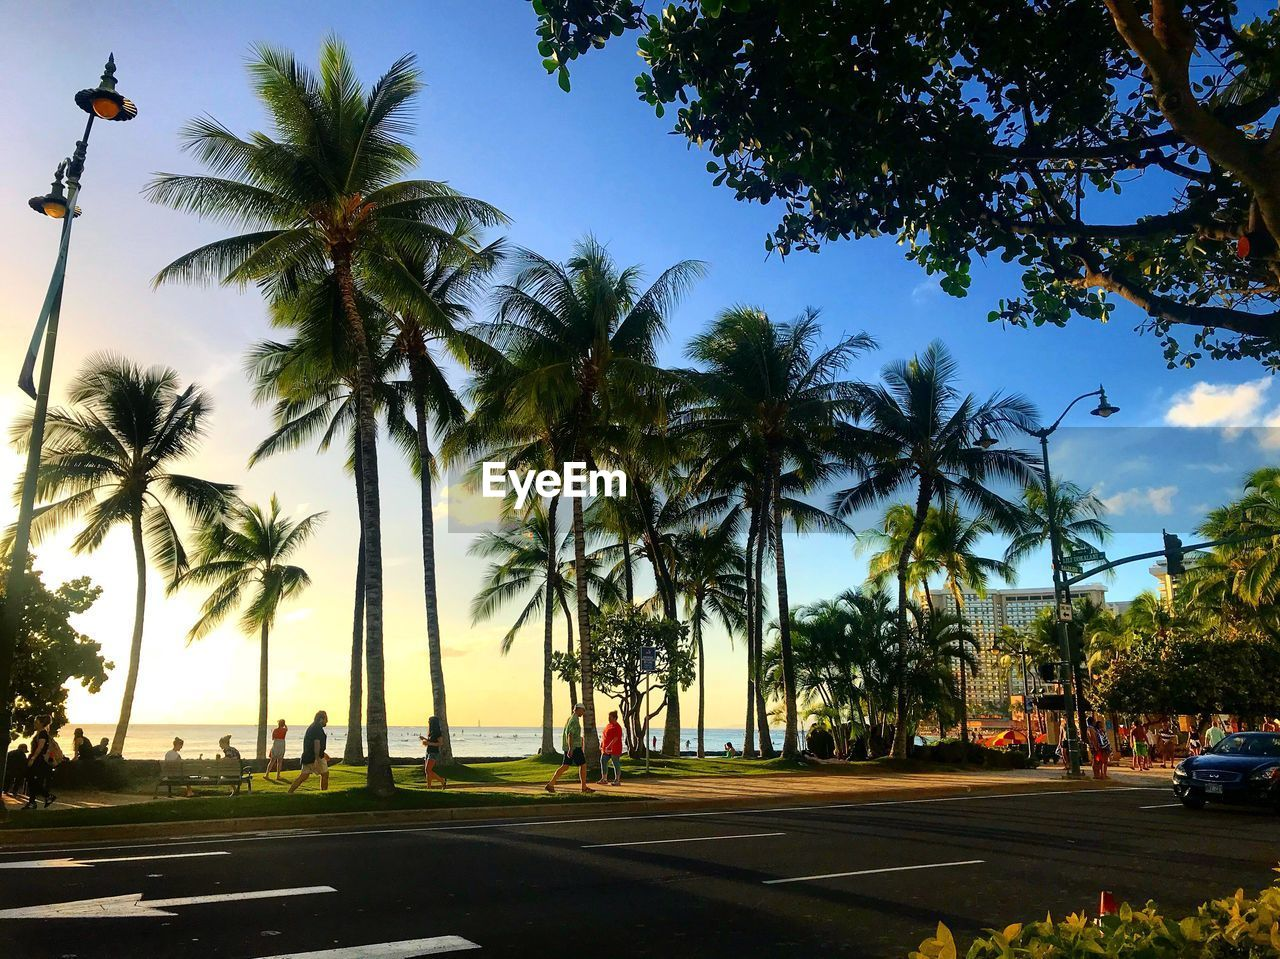 tree, palm tree, tropical climate, plant, sky, transportation, road, nature, mode of transportation, motor vehicle, land vehicle, car, city, growth, sunlight, day, street, incidental people, coconut palm tree, outdoors, tropical tree